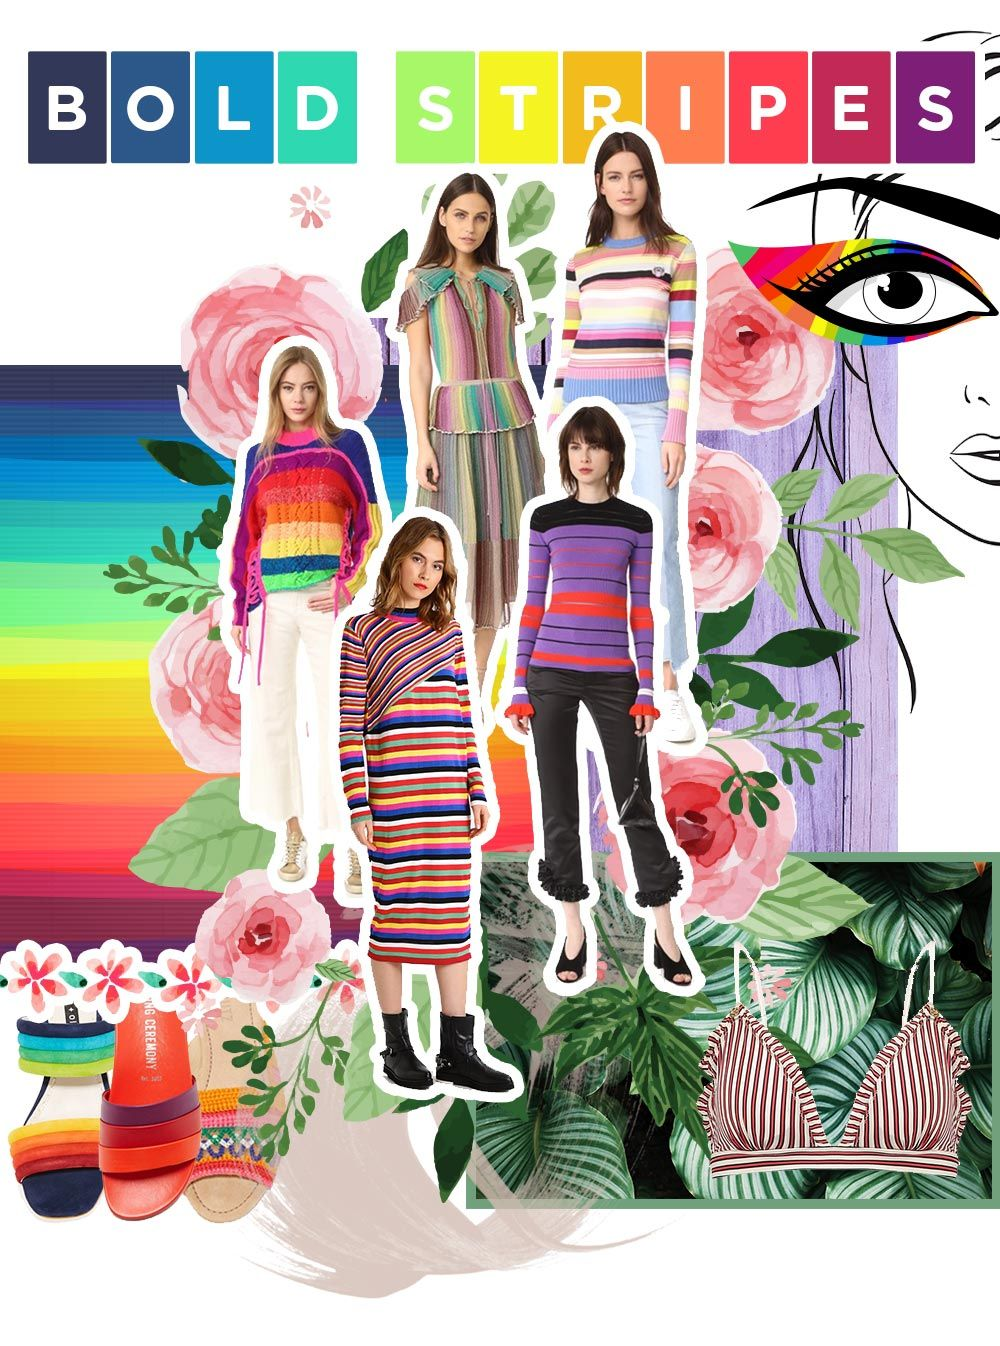 348 Best Images About Mood Board Inspiration On Pinterest: Fashion Mood Boards Zu Den 5 Top Modetrends 2017 In 2019